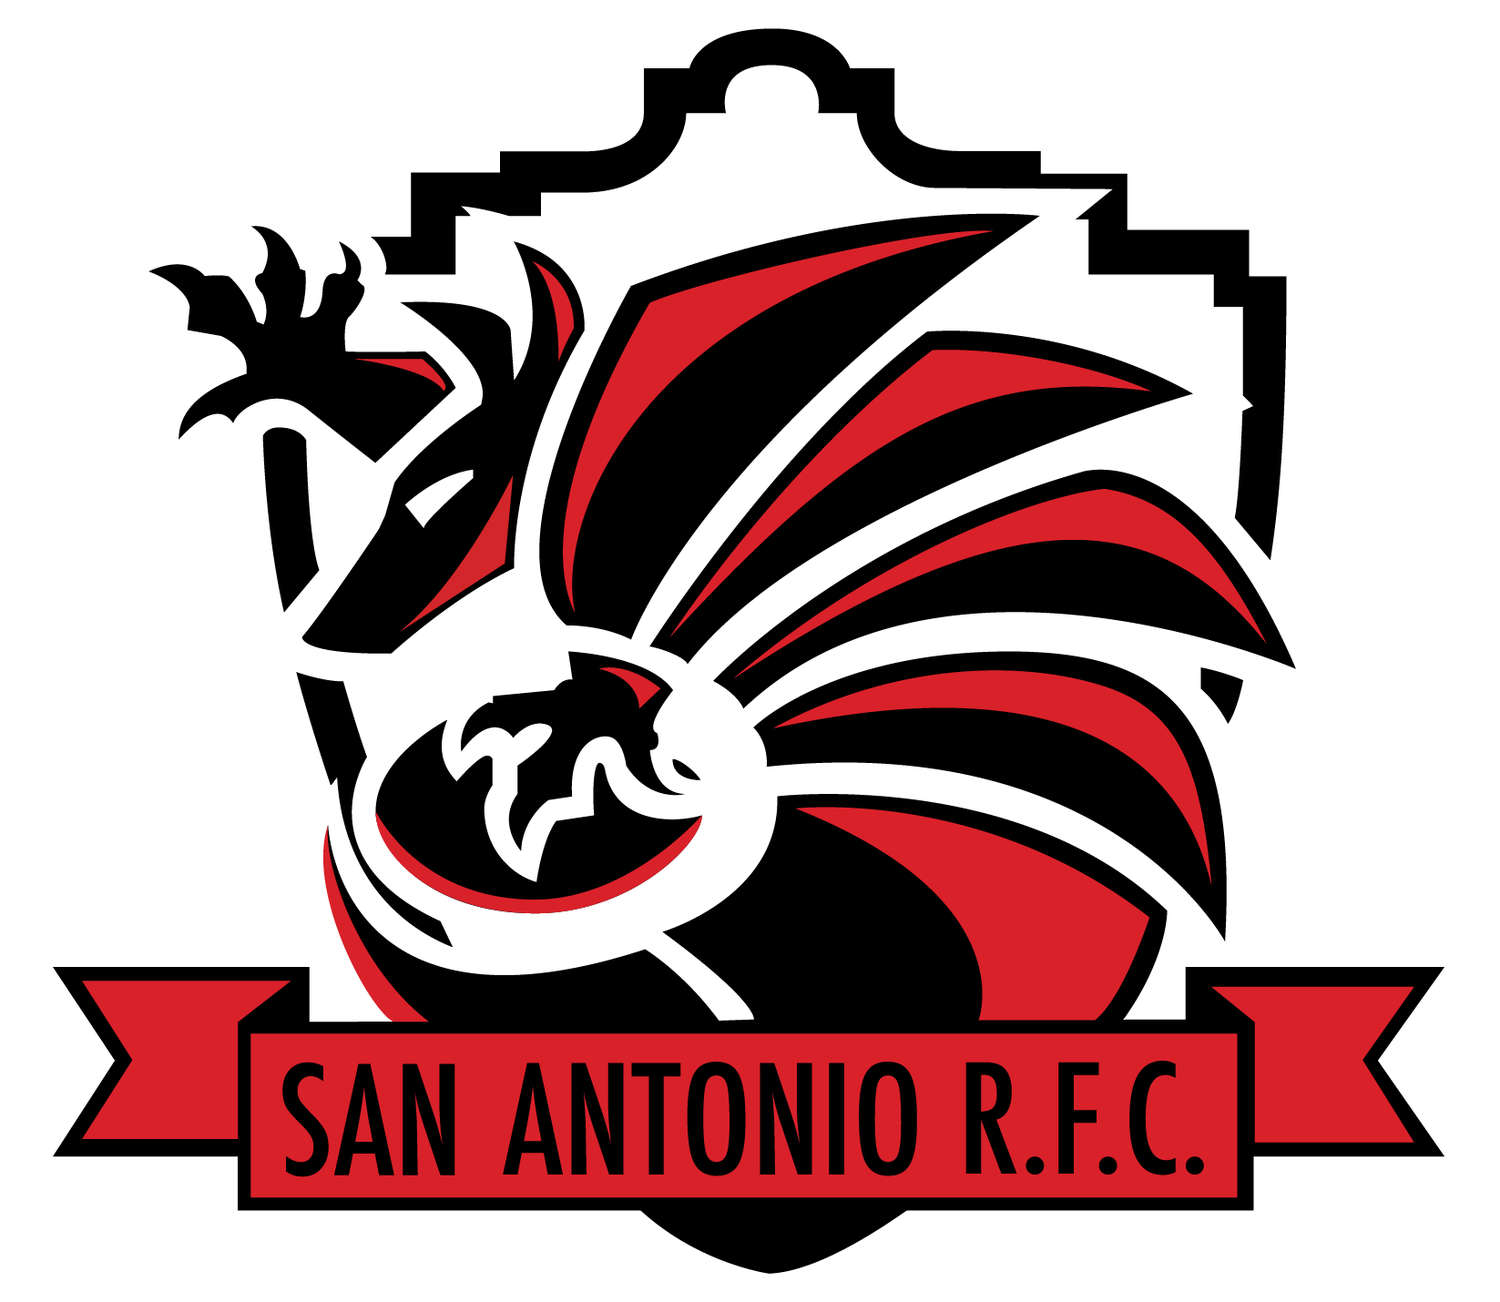 San Antonio Rugby Football Club